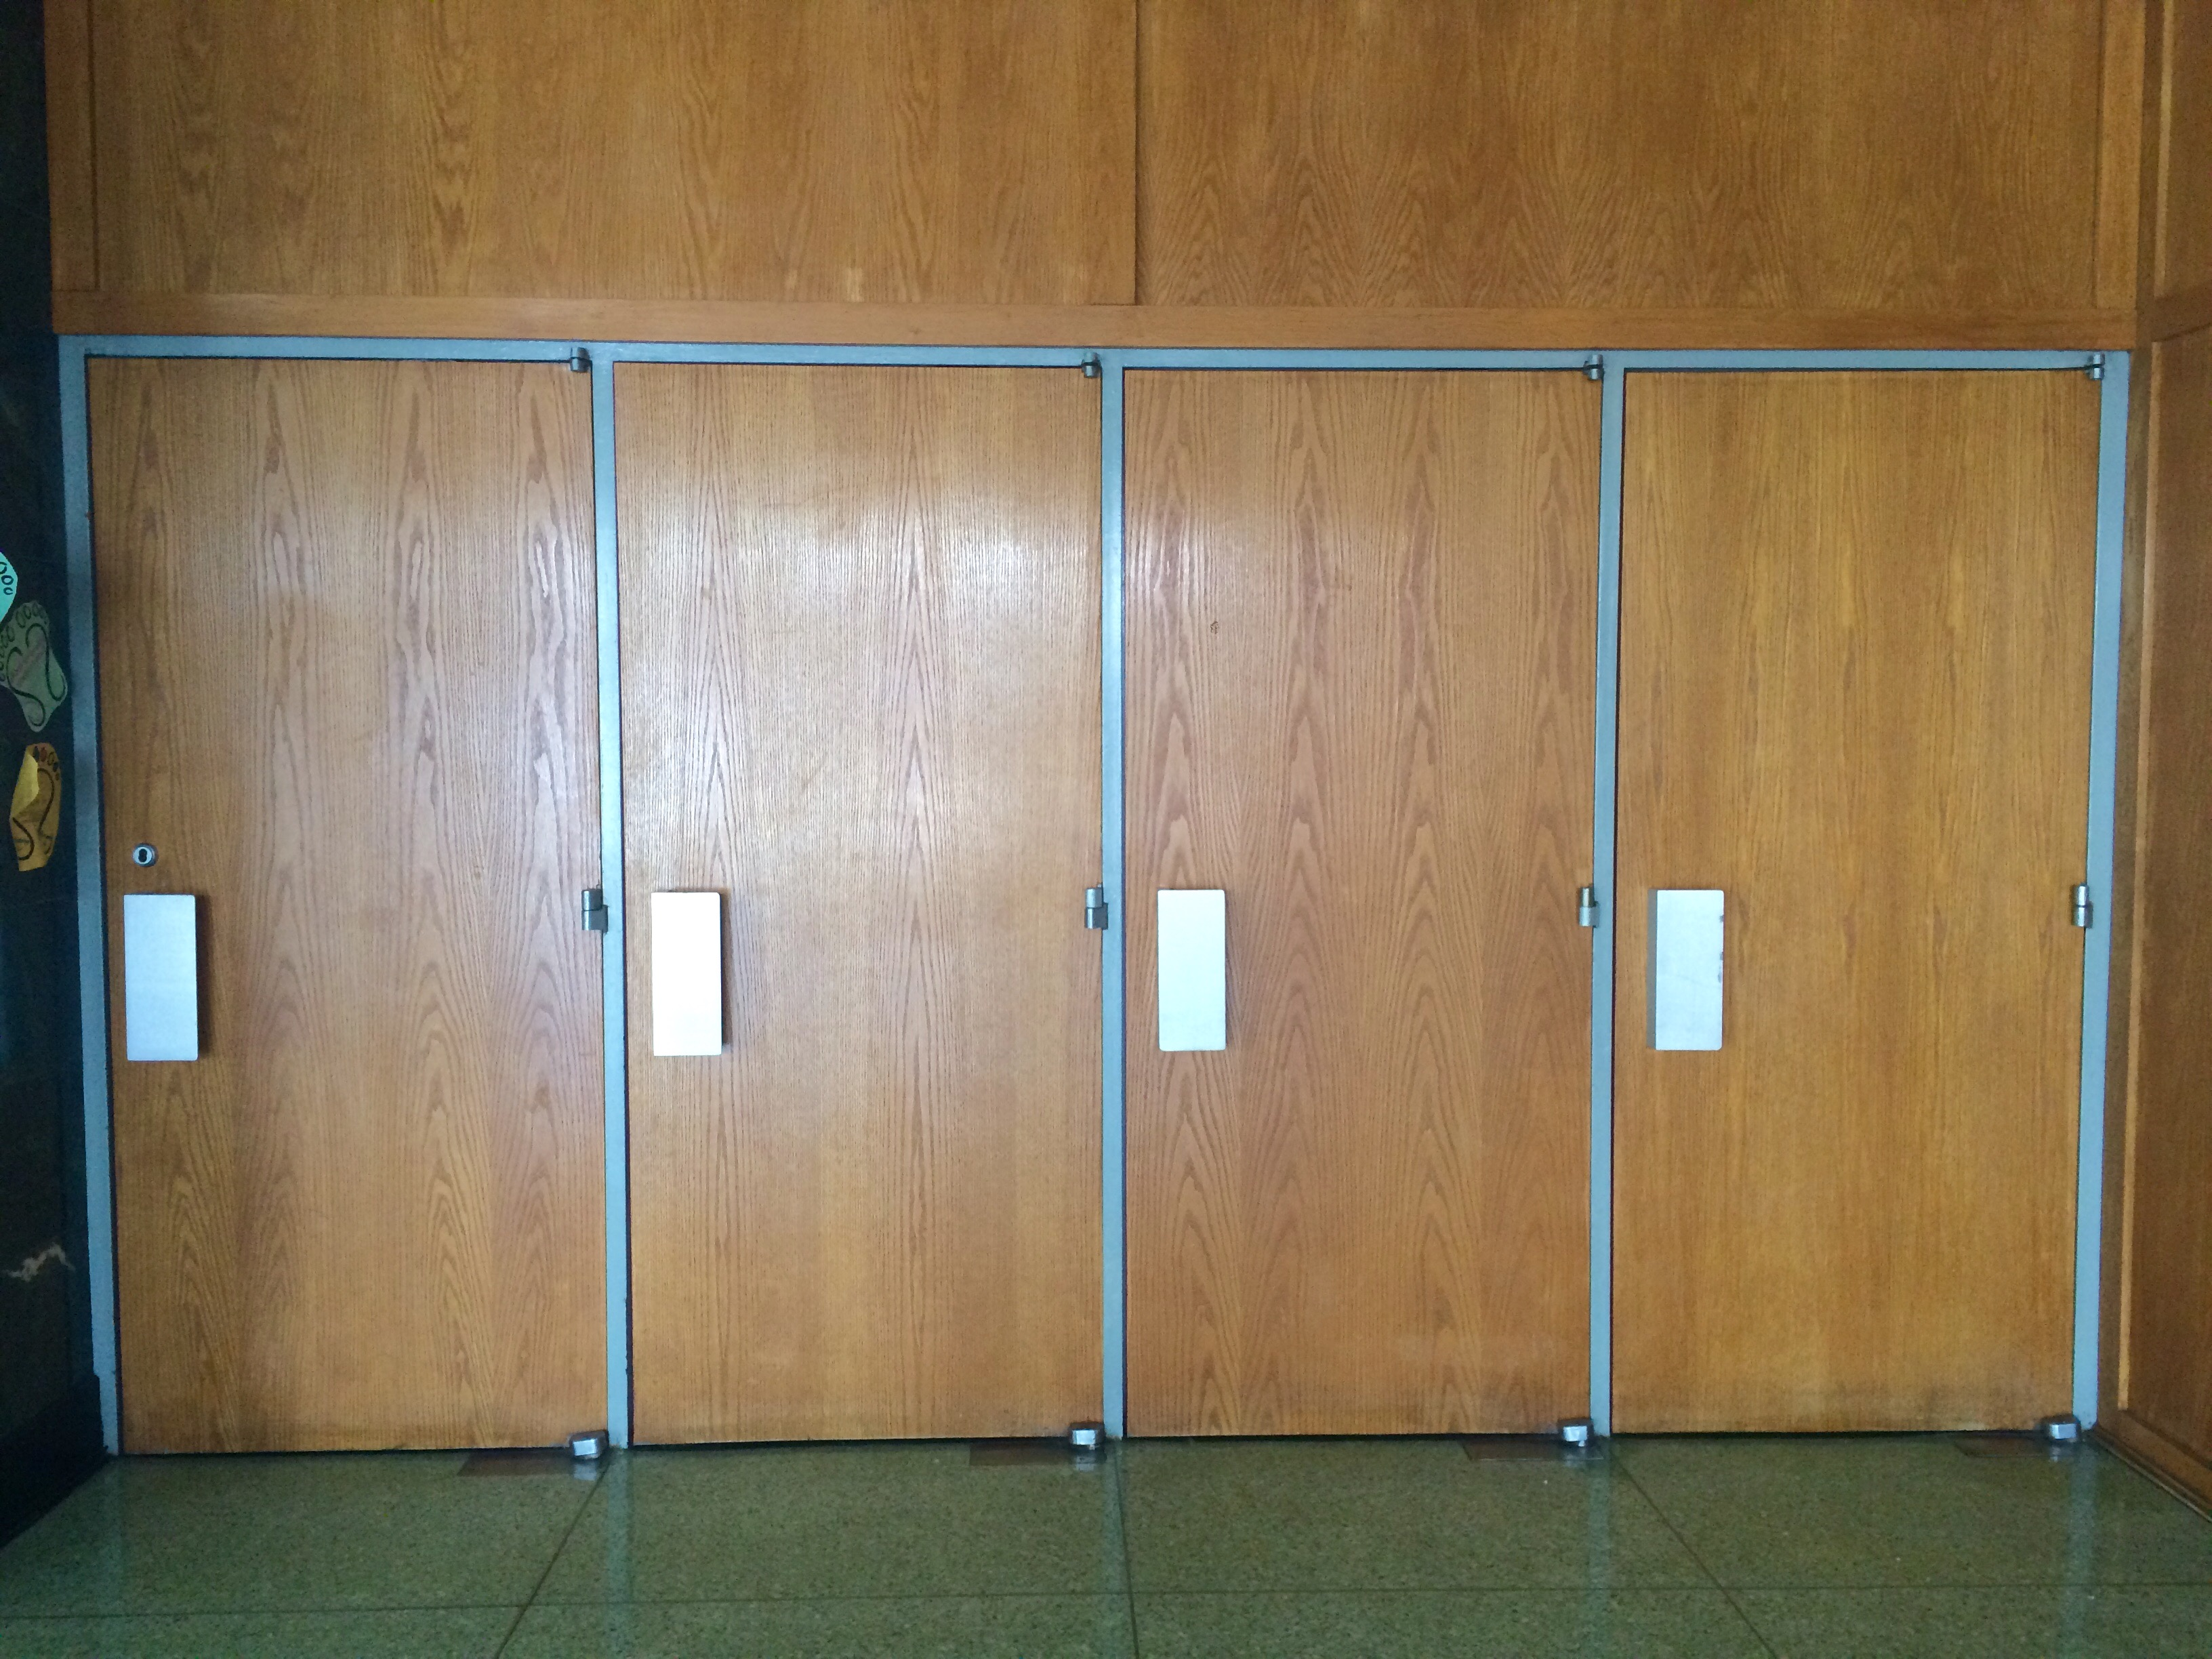 Auditorium Doors : auditorium doors - pezcame.com